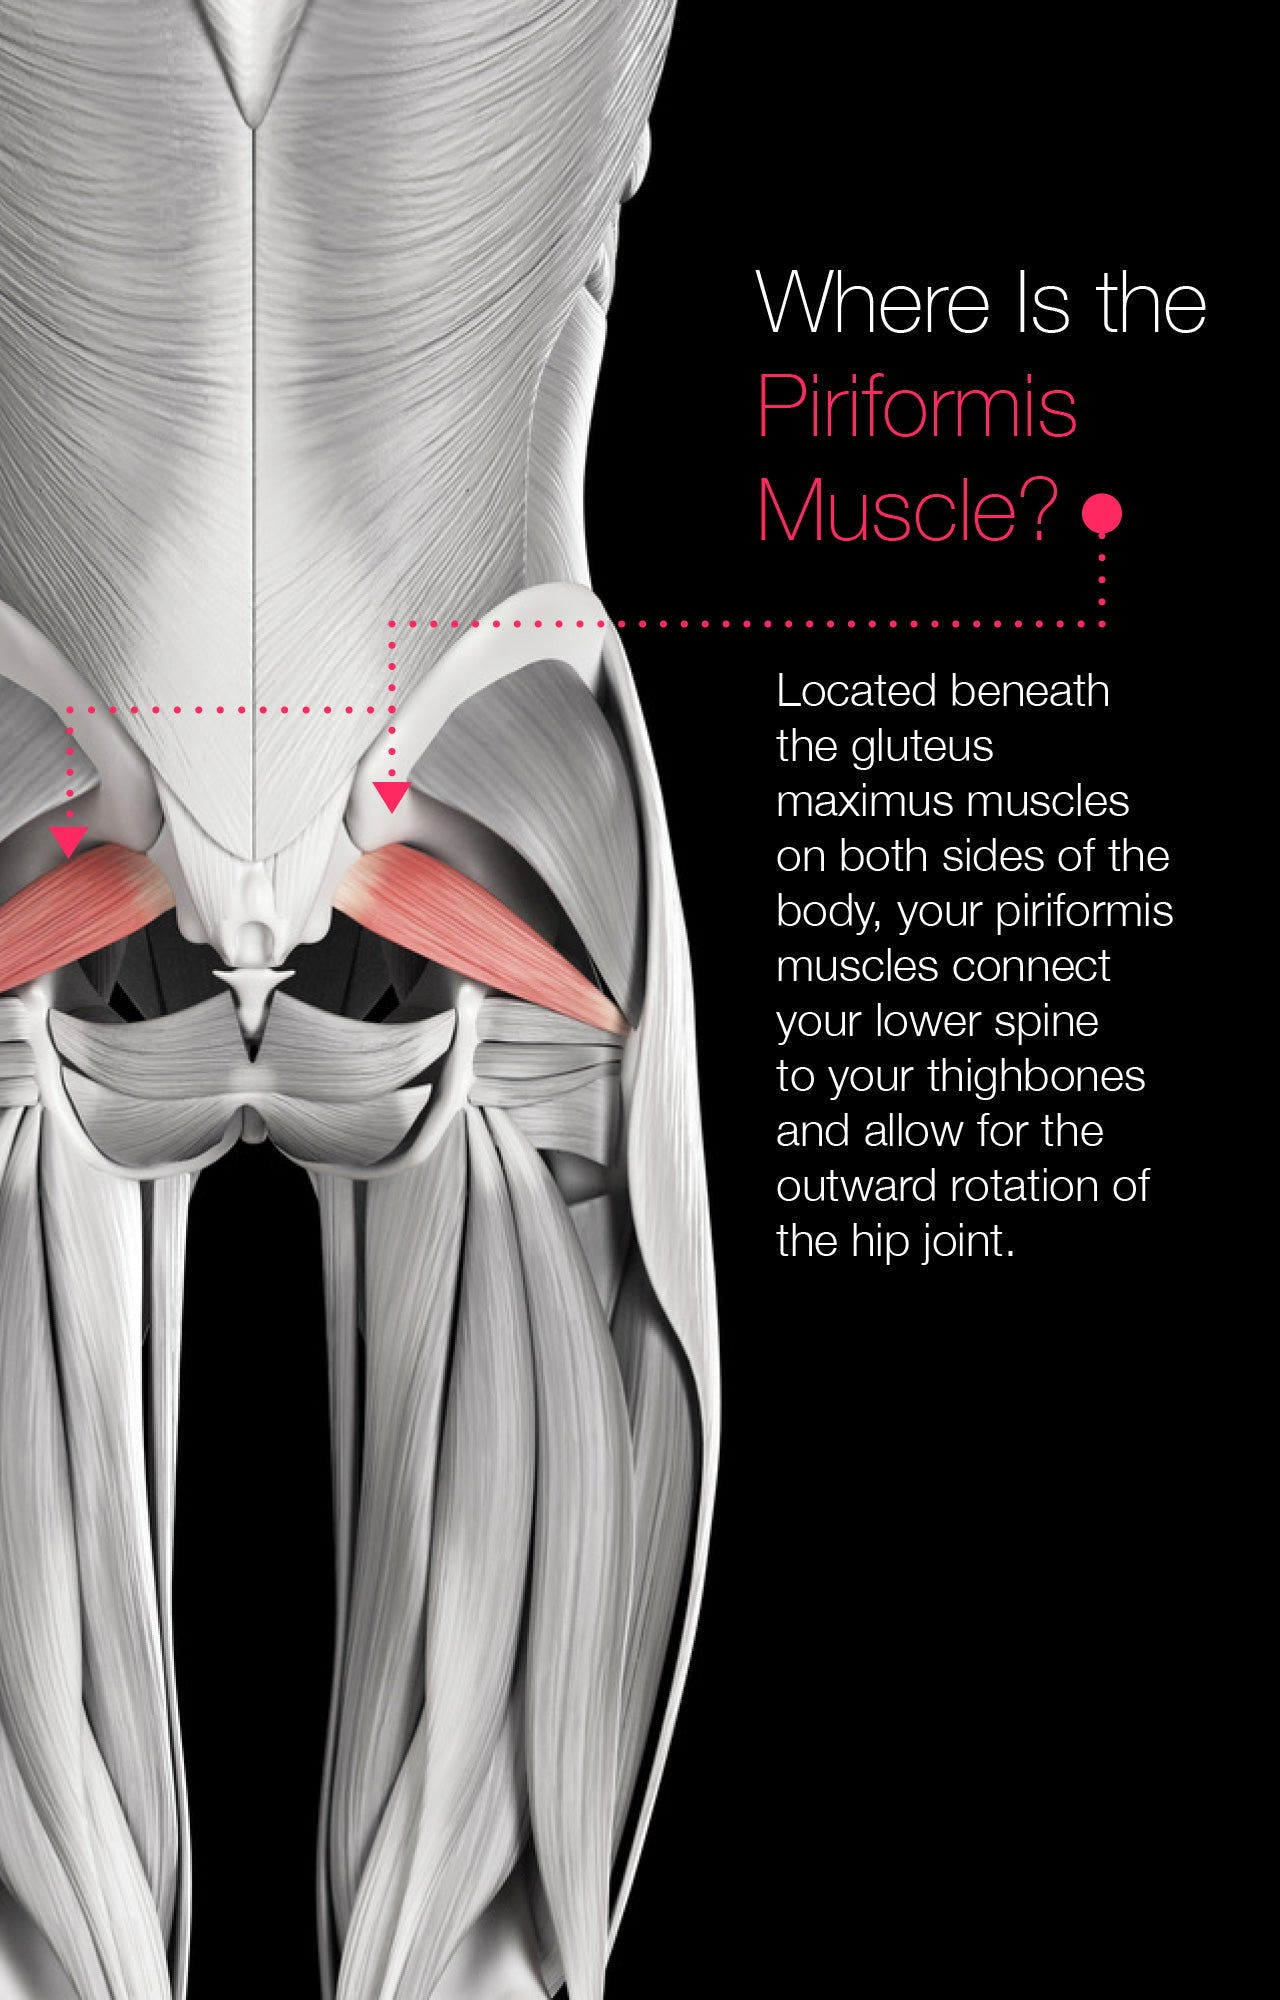 Where Is the Piriformis Muscle?